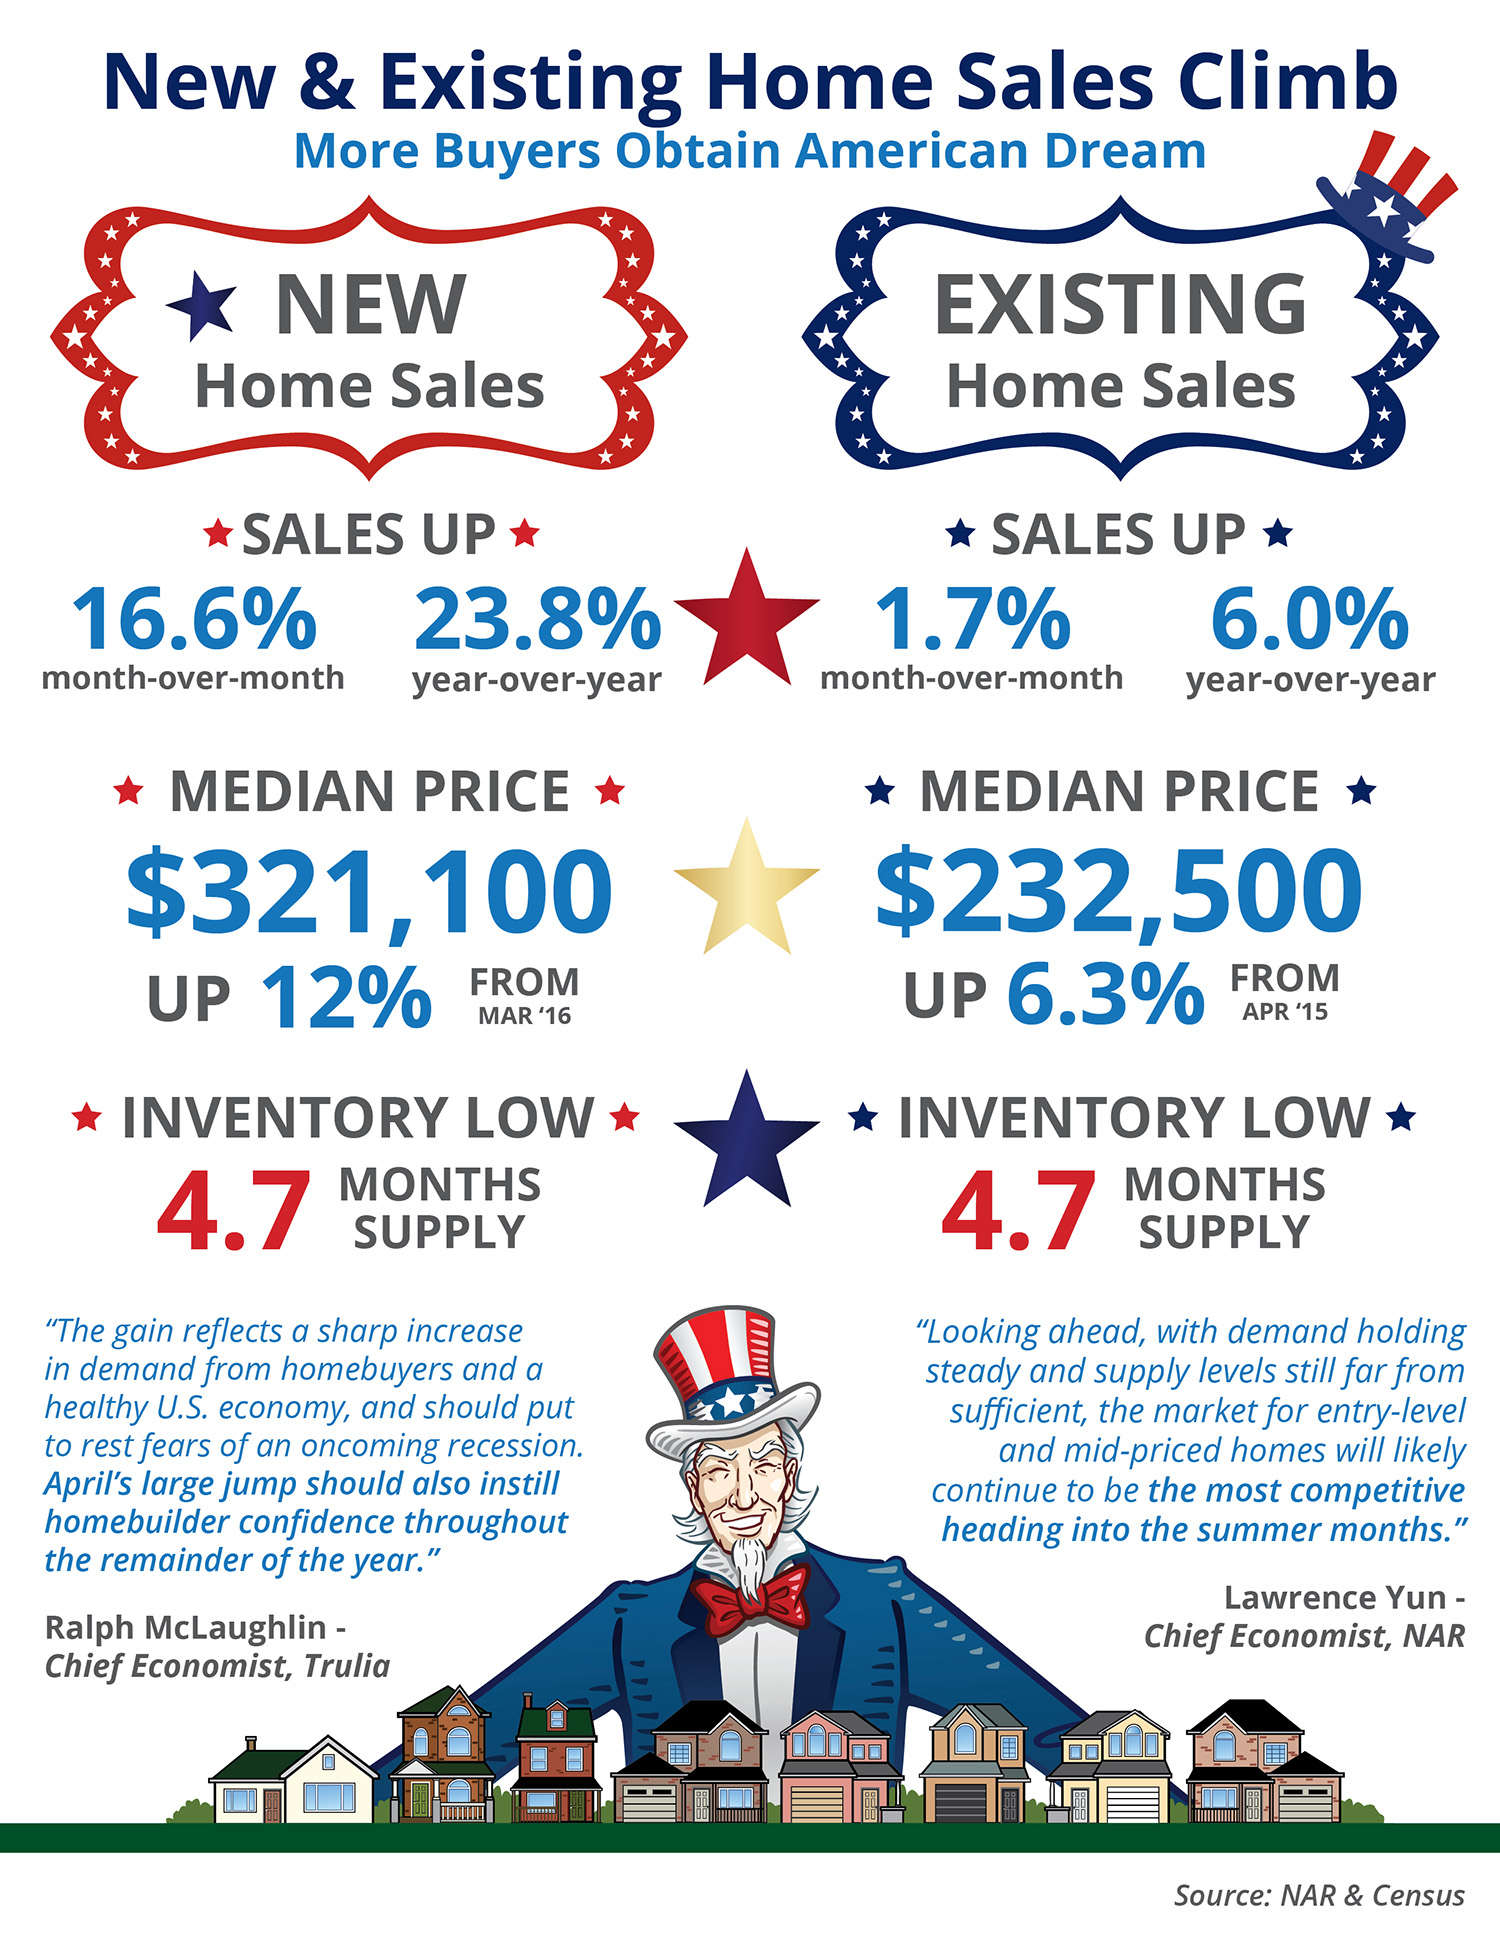 New & Existing Home Sales Climb [INFOGRAPHIC] | Simplifying The Market